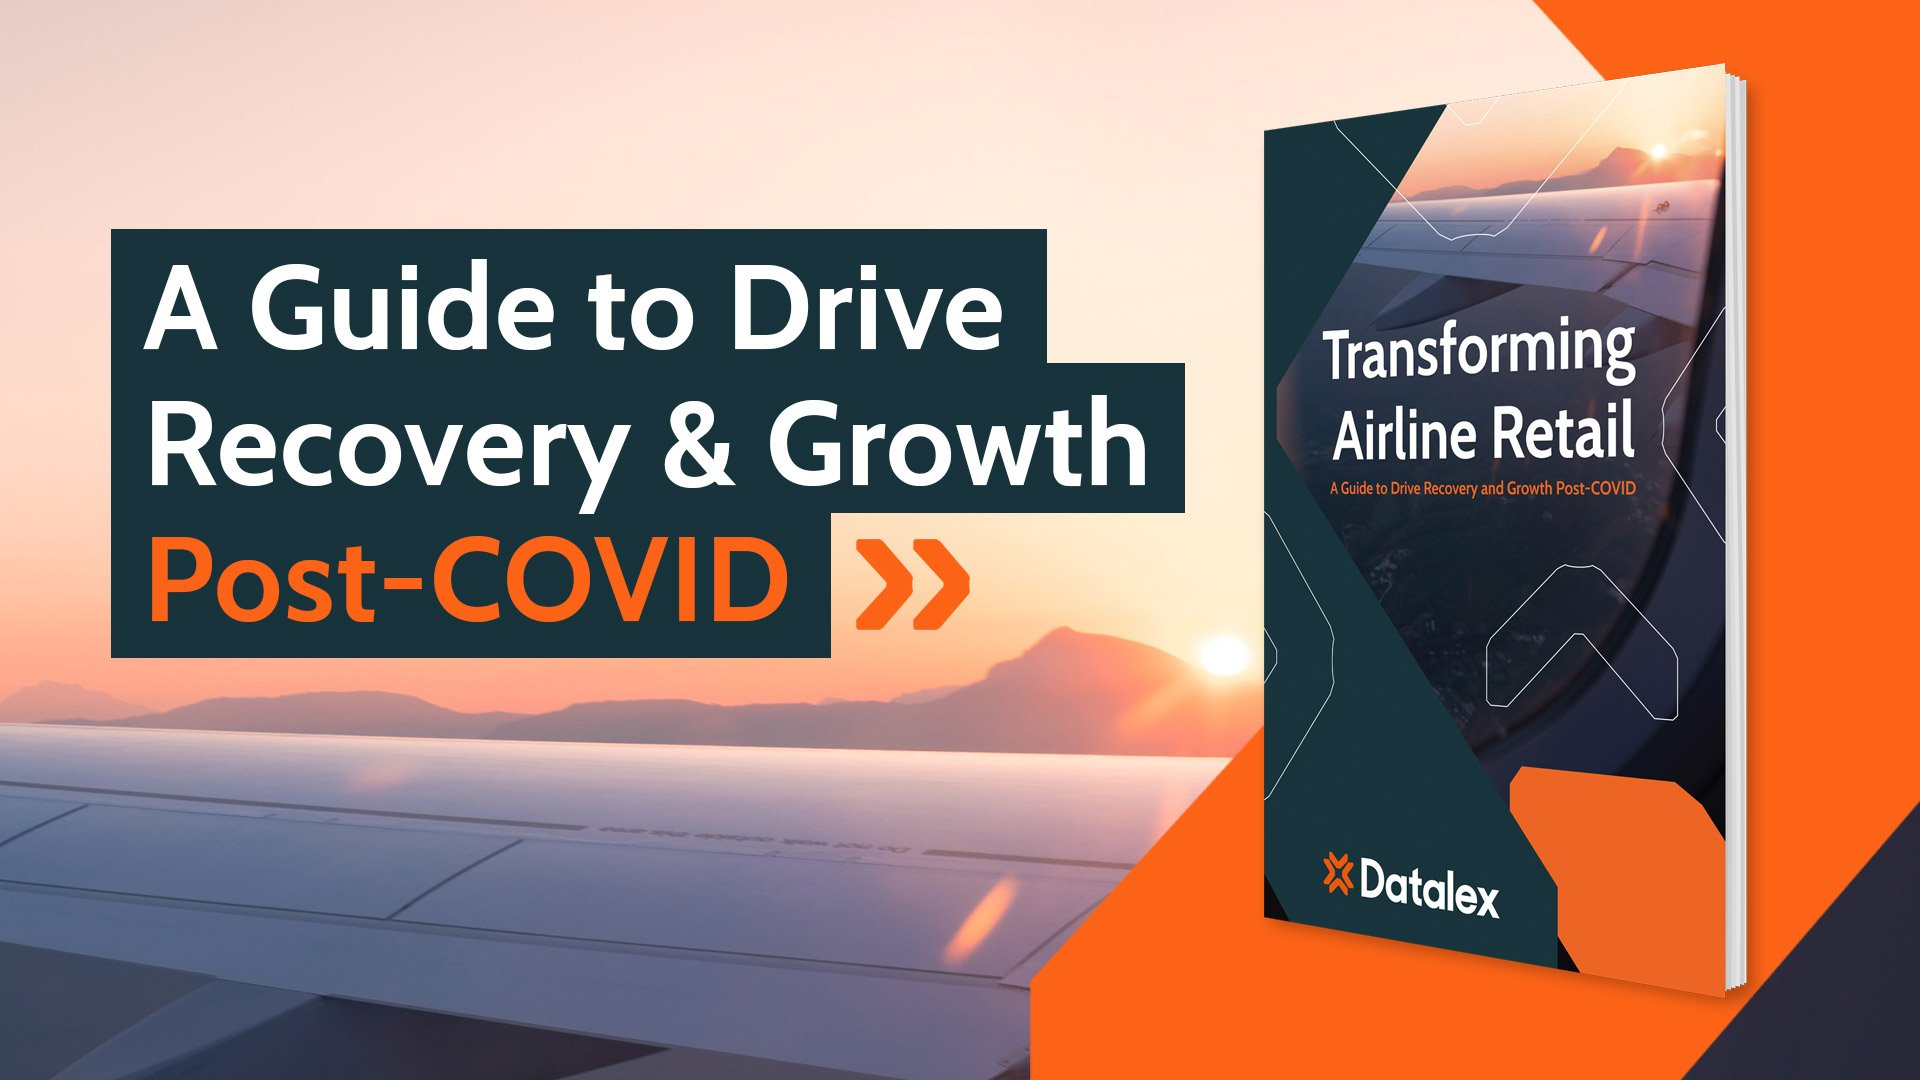 A Guide to Drive Recovery and Growth Post-COVID